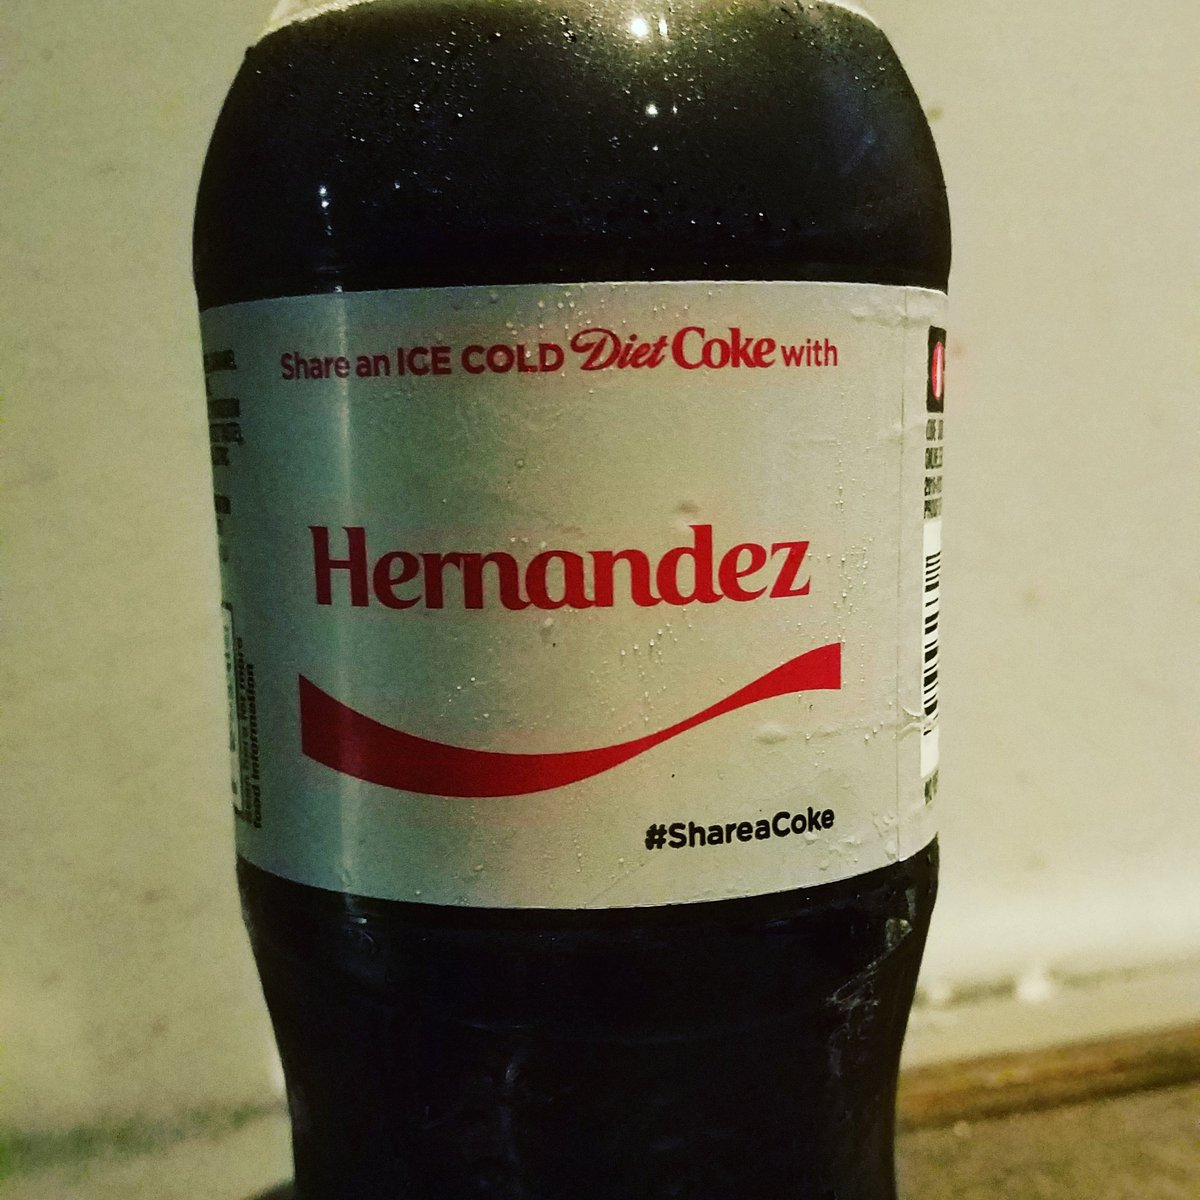 Can&#39;t find my own name on a @DietCoke bottle but I did find my favorite #mets player. #17 #hernandez <br>http://pic.twitter.com/tctyhMKJZG